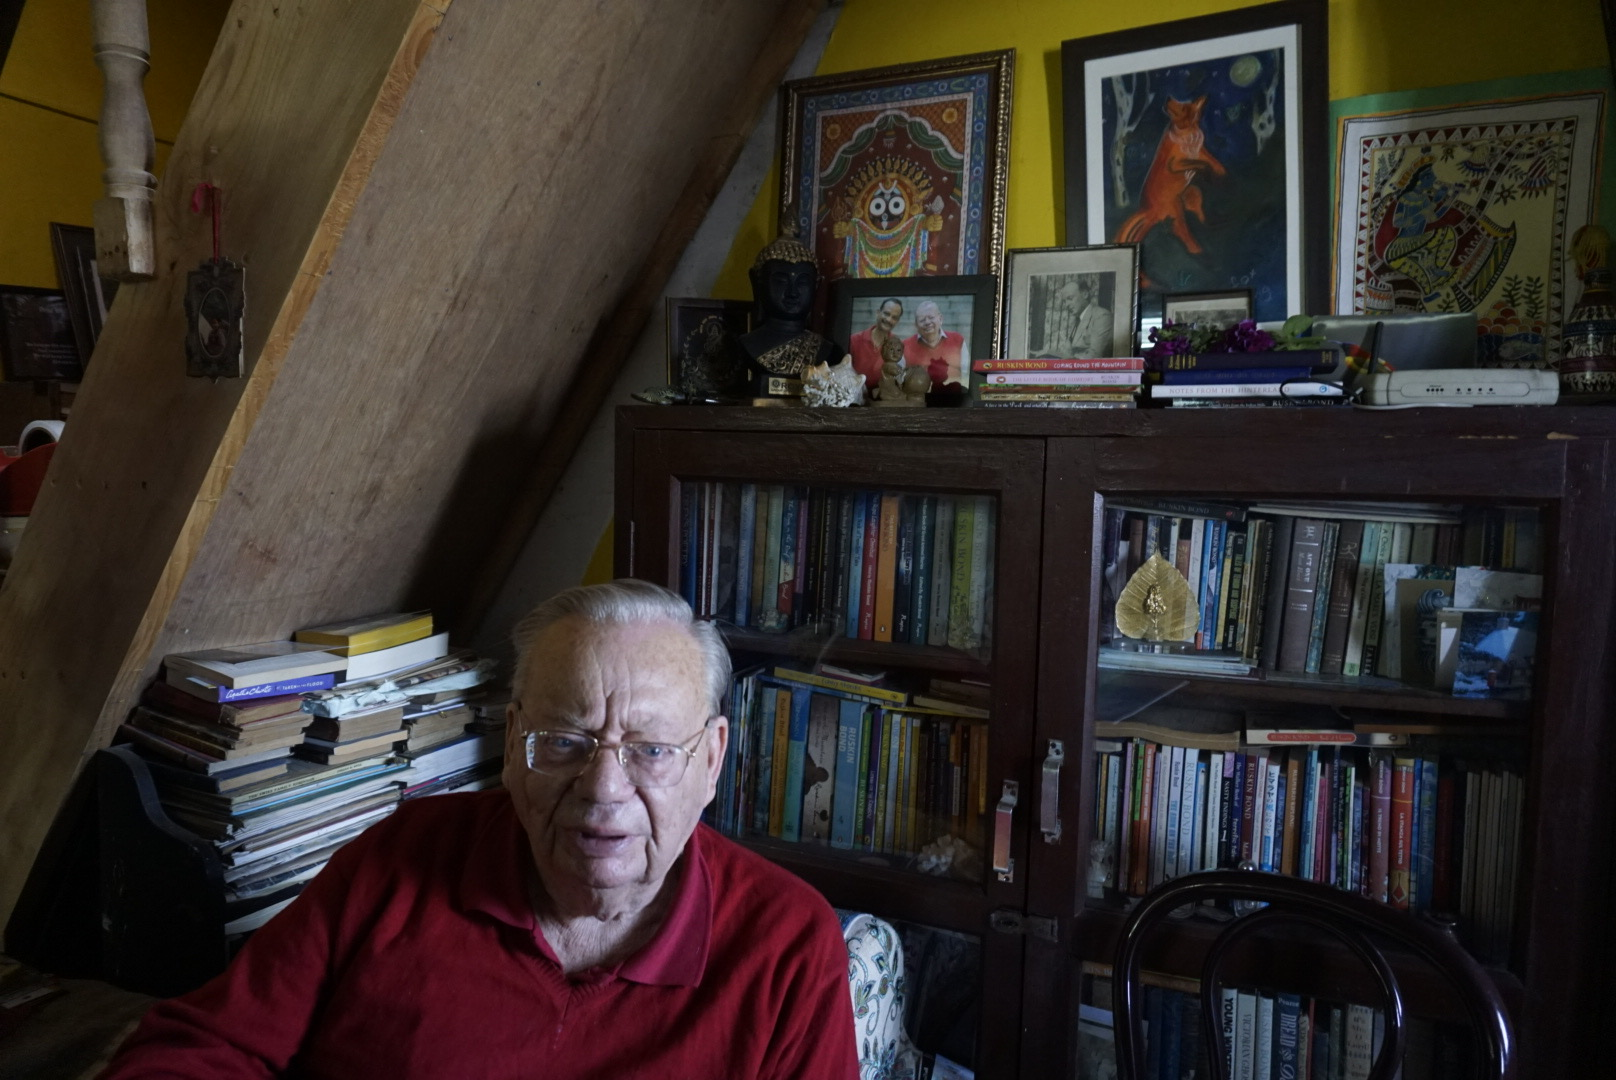 Ruskin Bond in his home in Landour, Mussorie. May 2019.  From TLJ archives